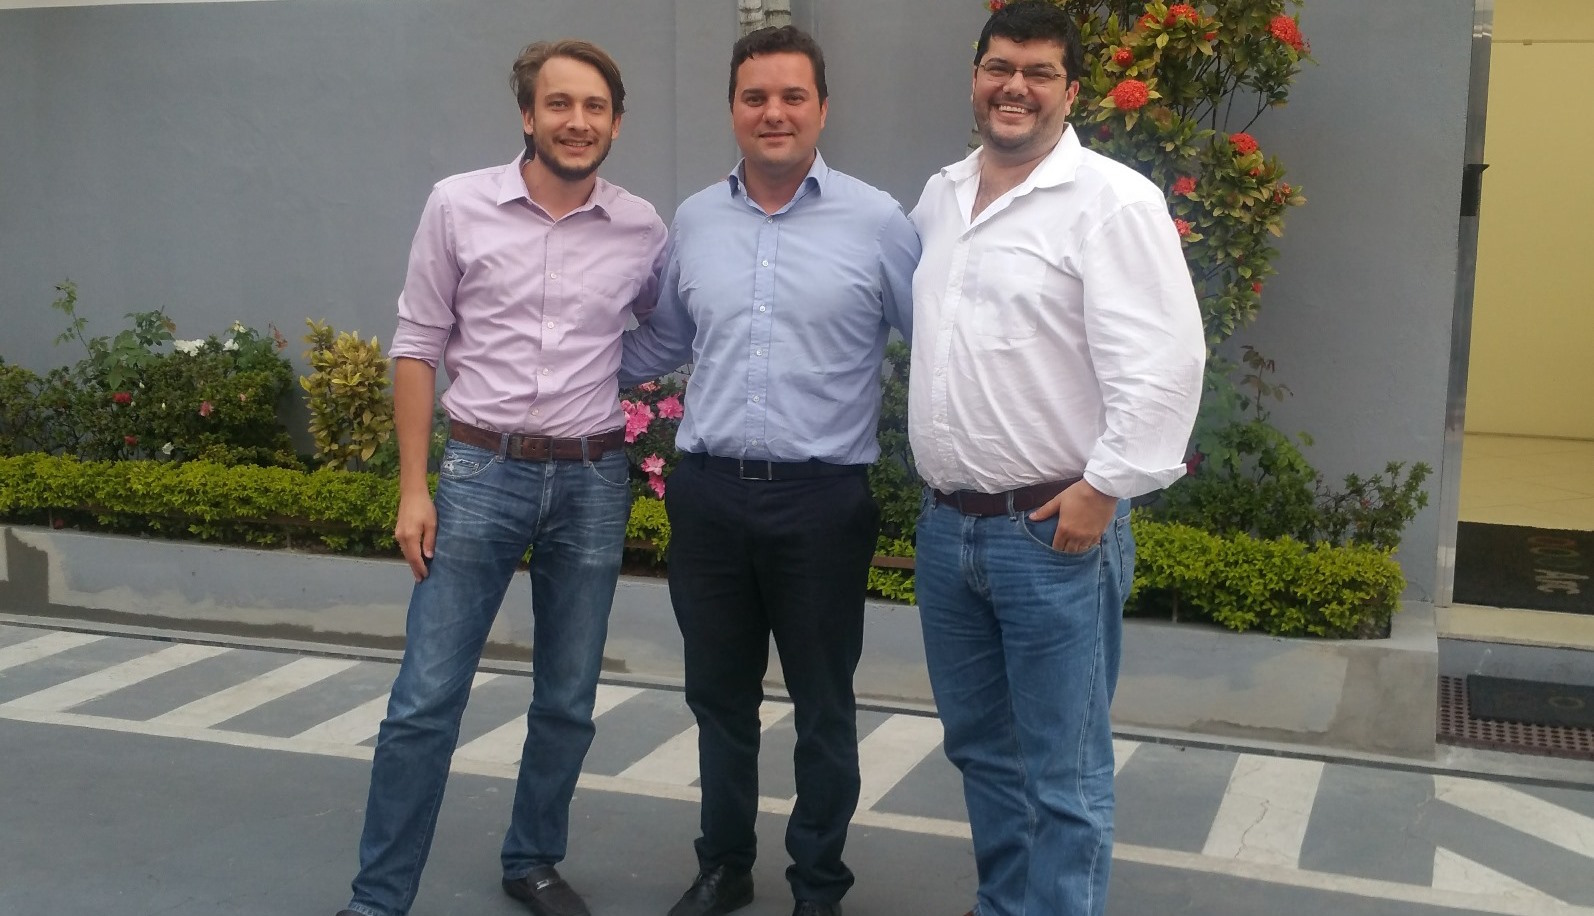 Lodologic's team in Sao Paulo, from left, Gabriel Kainuma, Plinio Pimentel and Ayrton Junior. Photo: courtesy of Lodologic